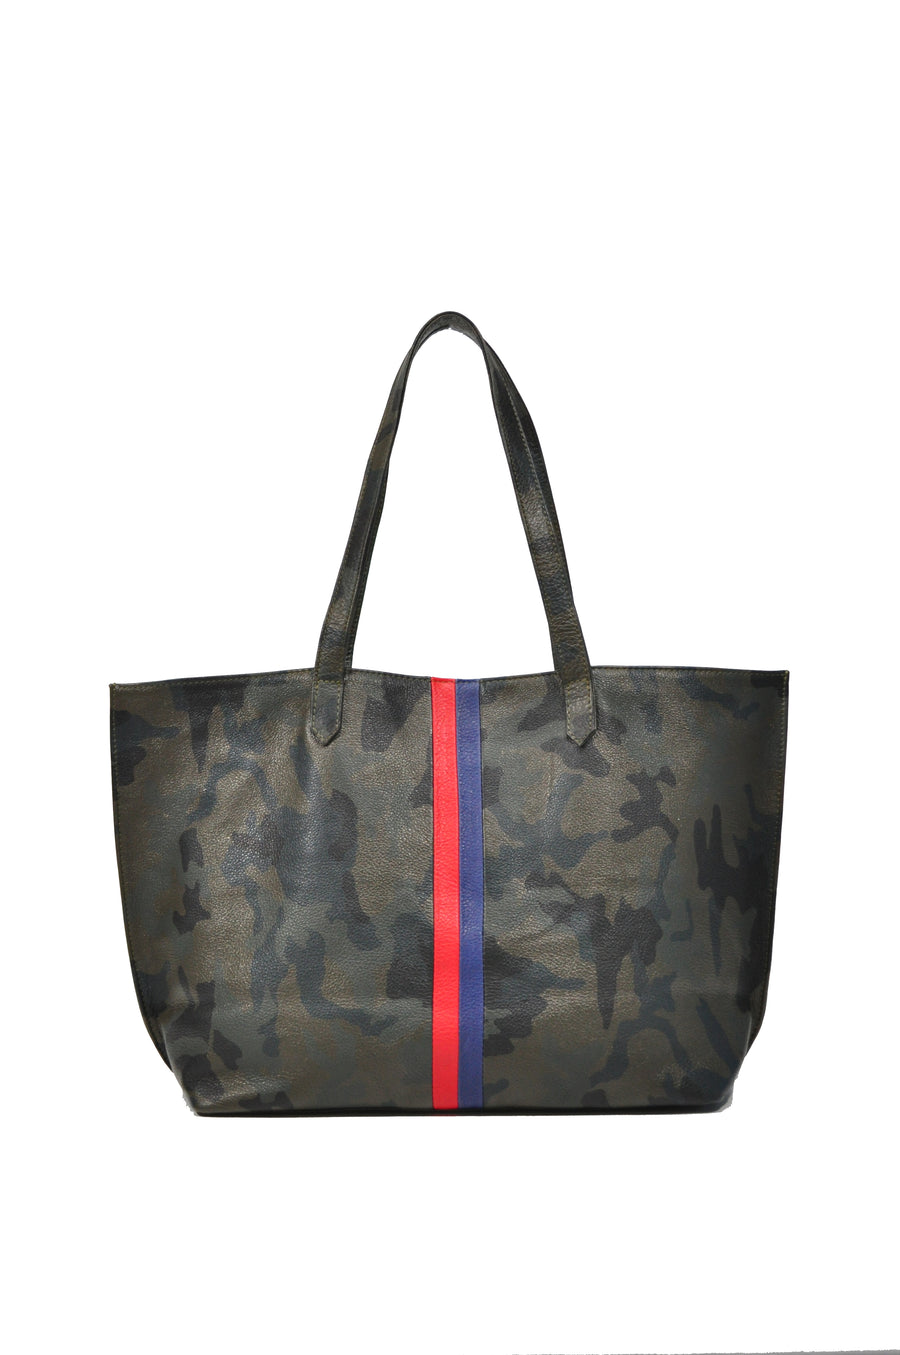 Edge Leather Tote  Green Camo With Red/Navy - Positive Elements